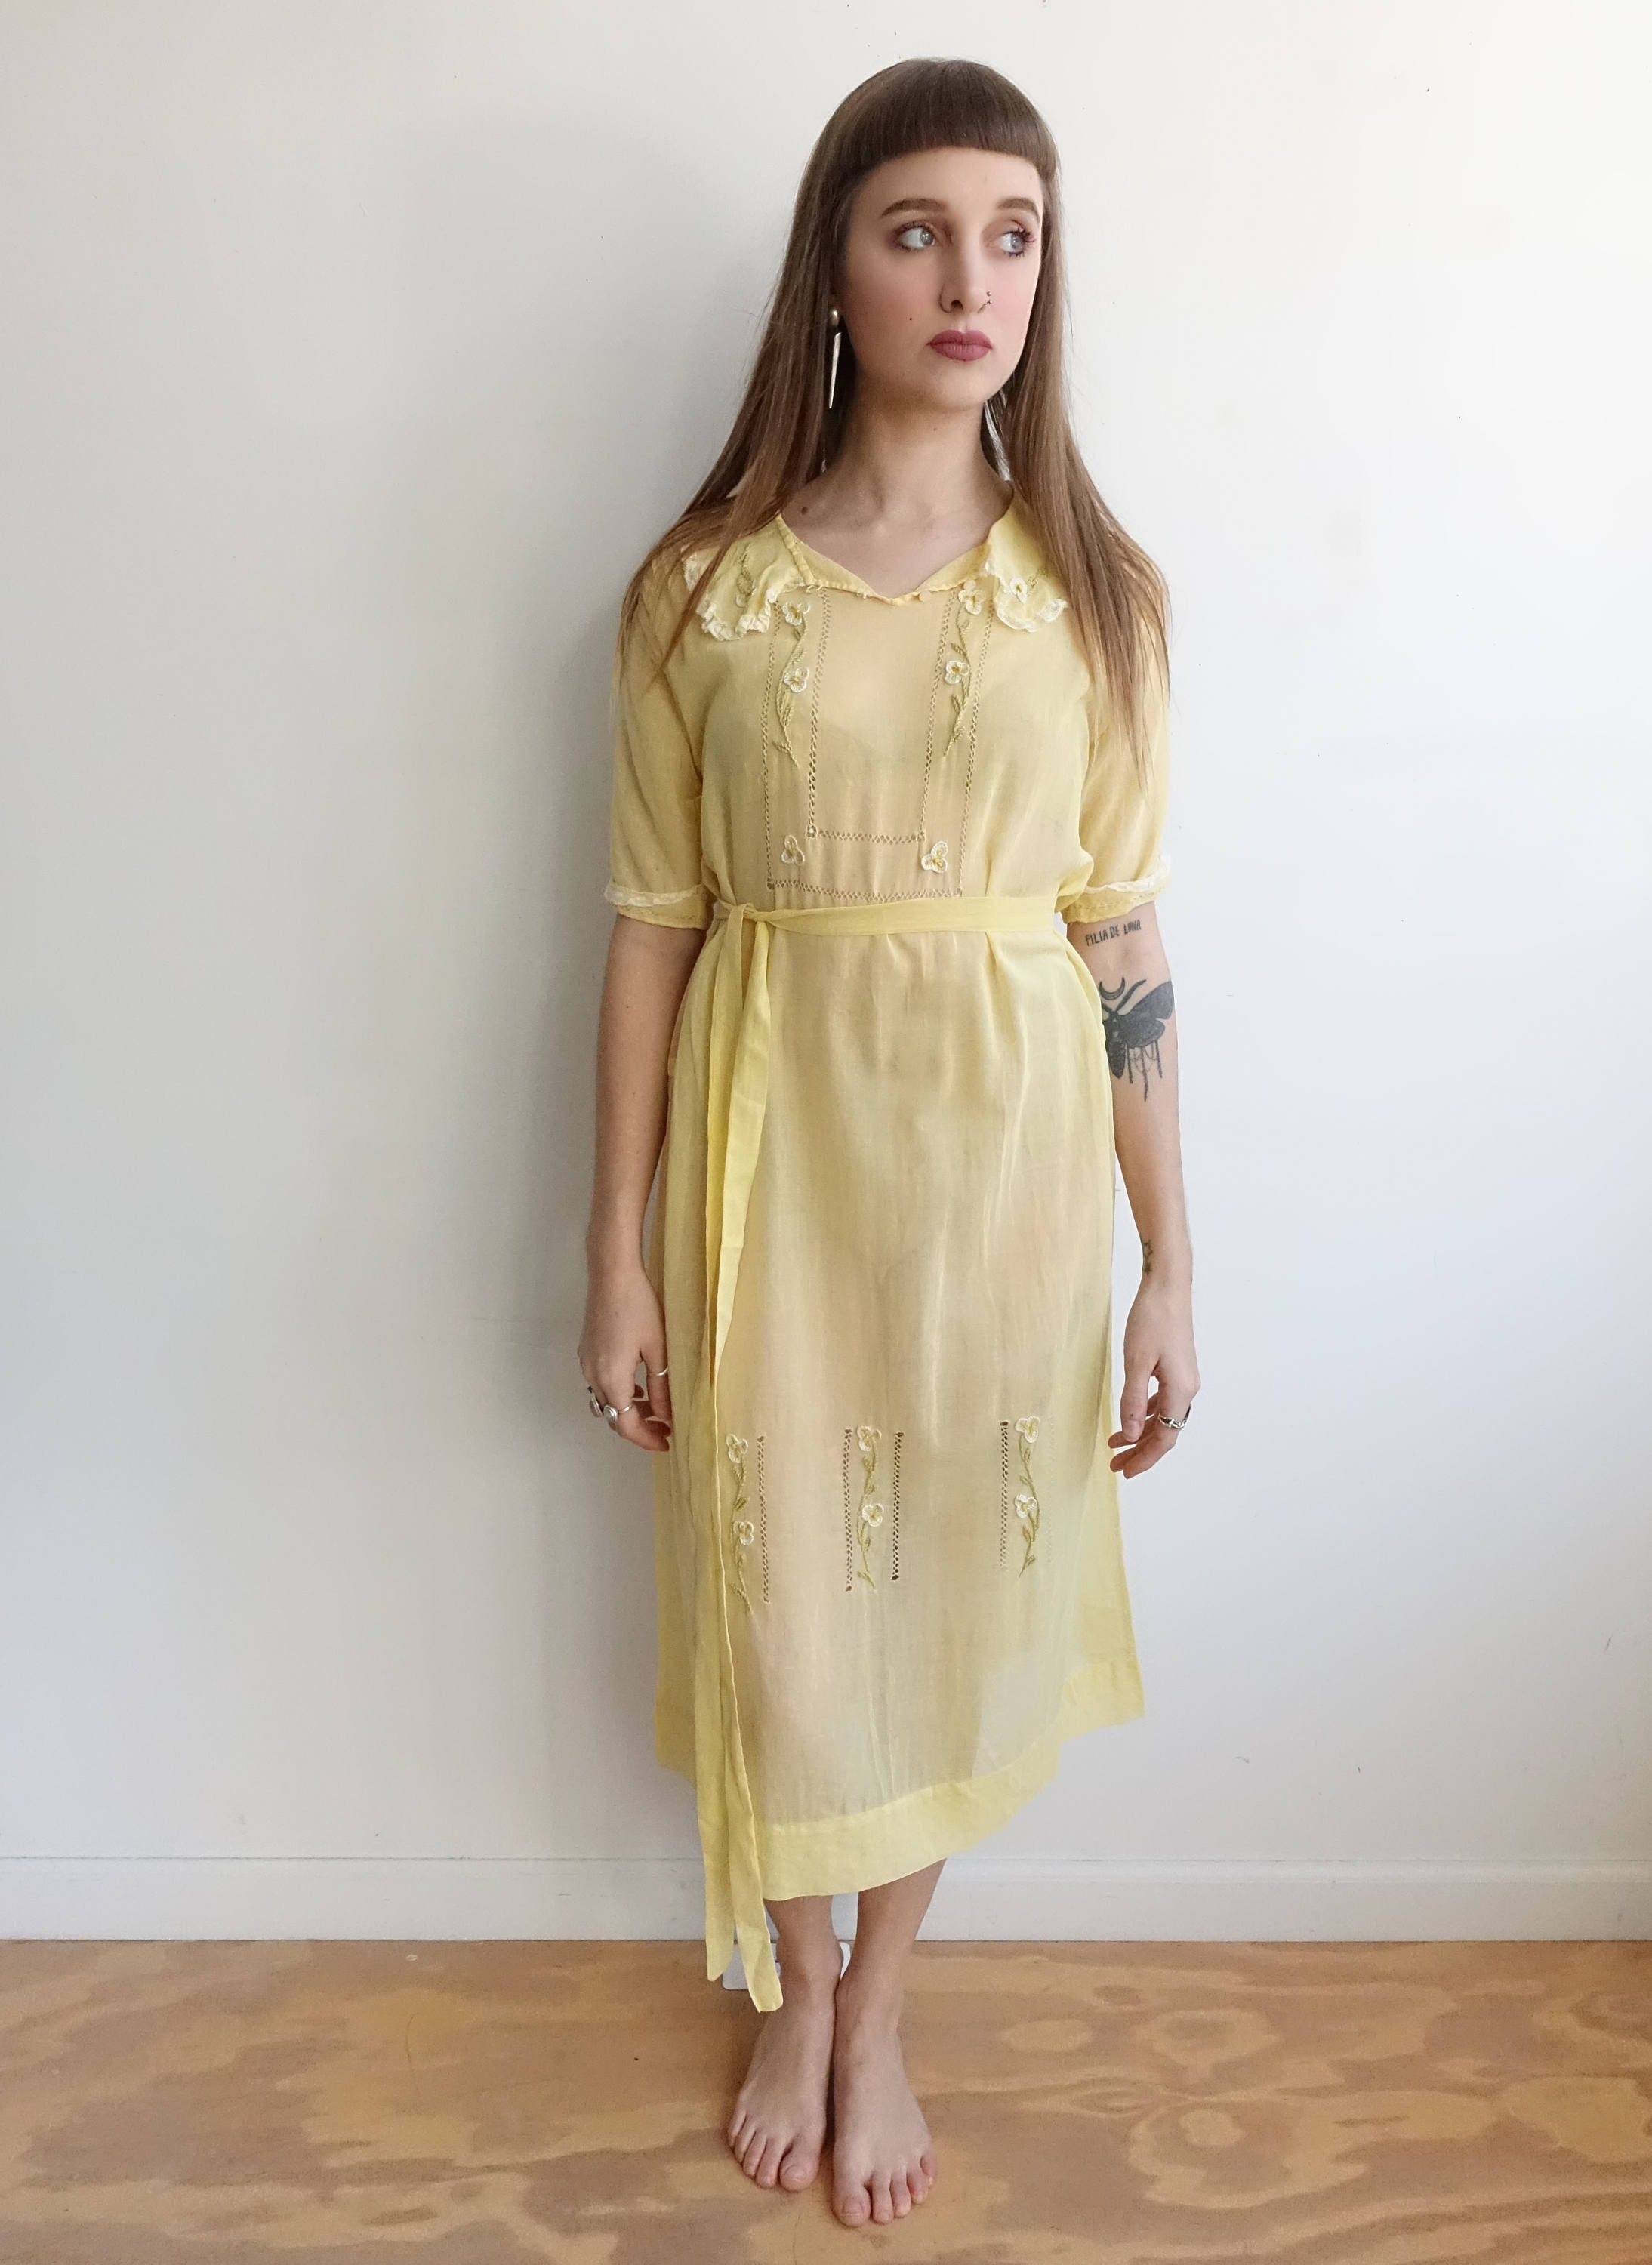 1920s Yellow Cotton Dress with Embroidery and Lace Trim and Fagoting/20s Day Dress/ Medium  Large by bottleofbread